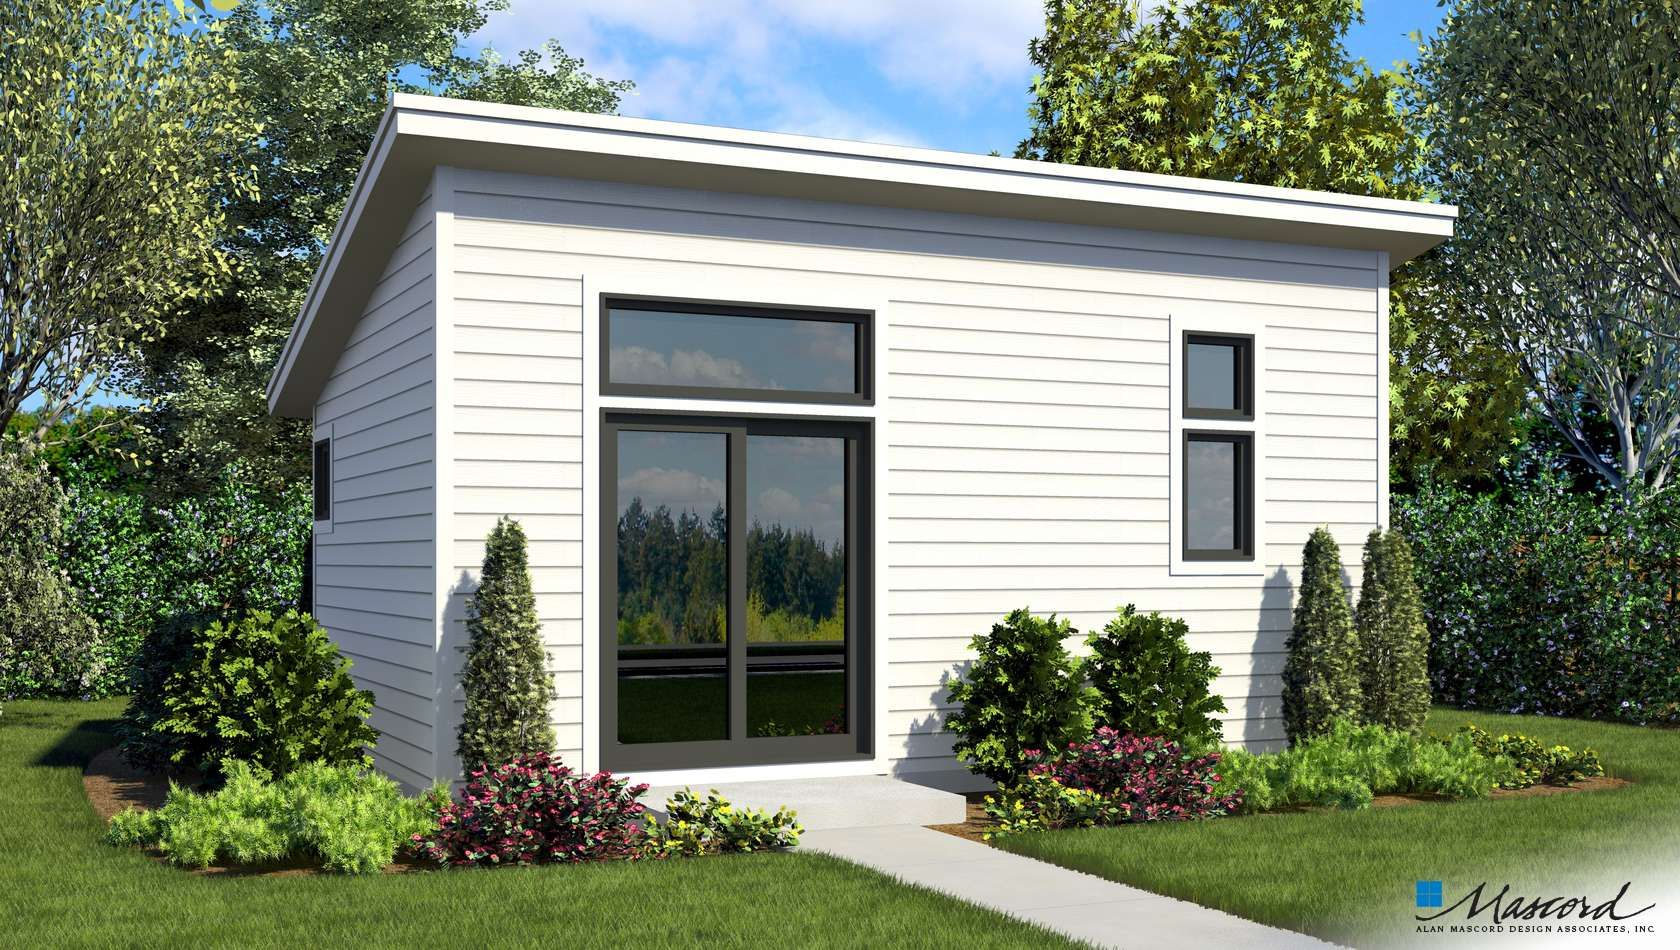 Main image for house plan 1181A: The Morrow